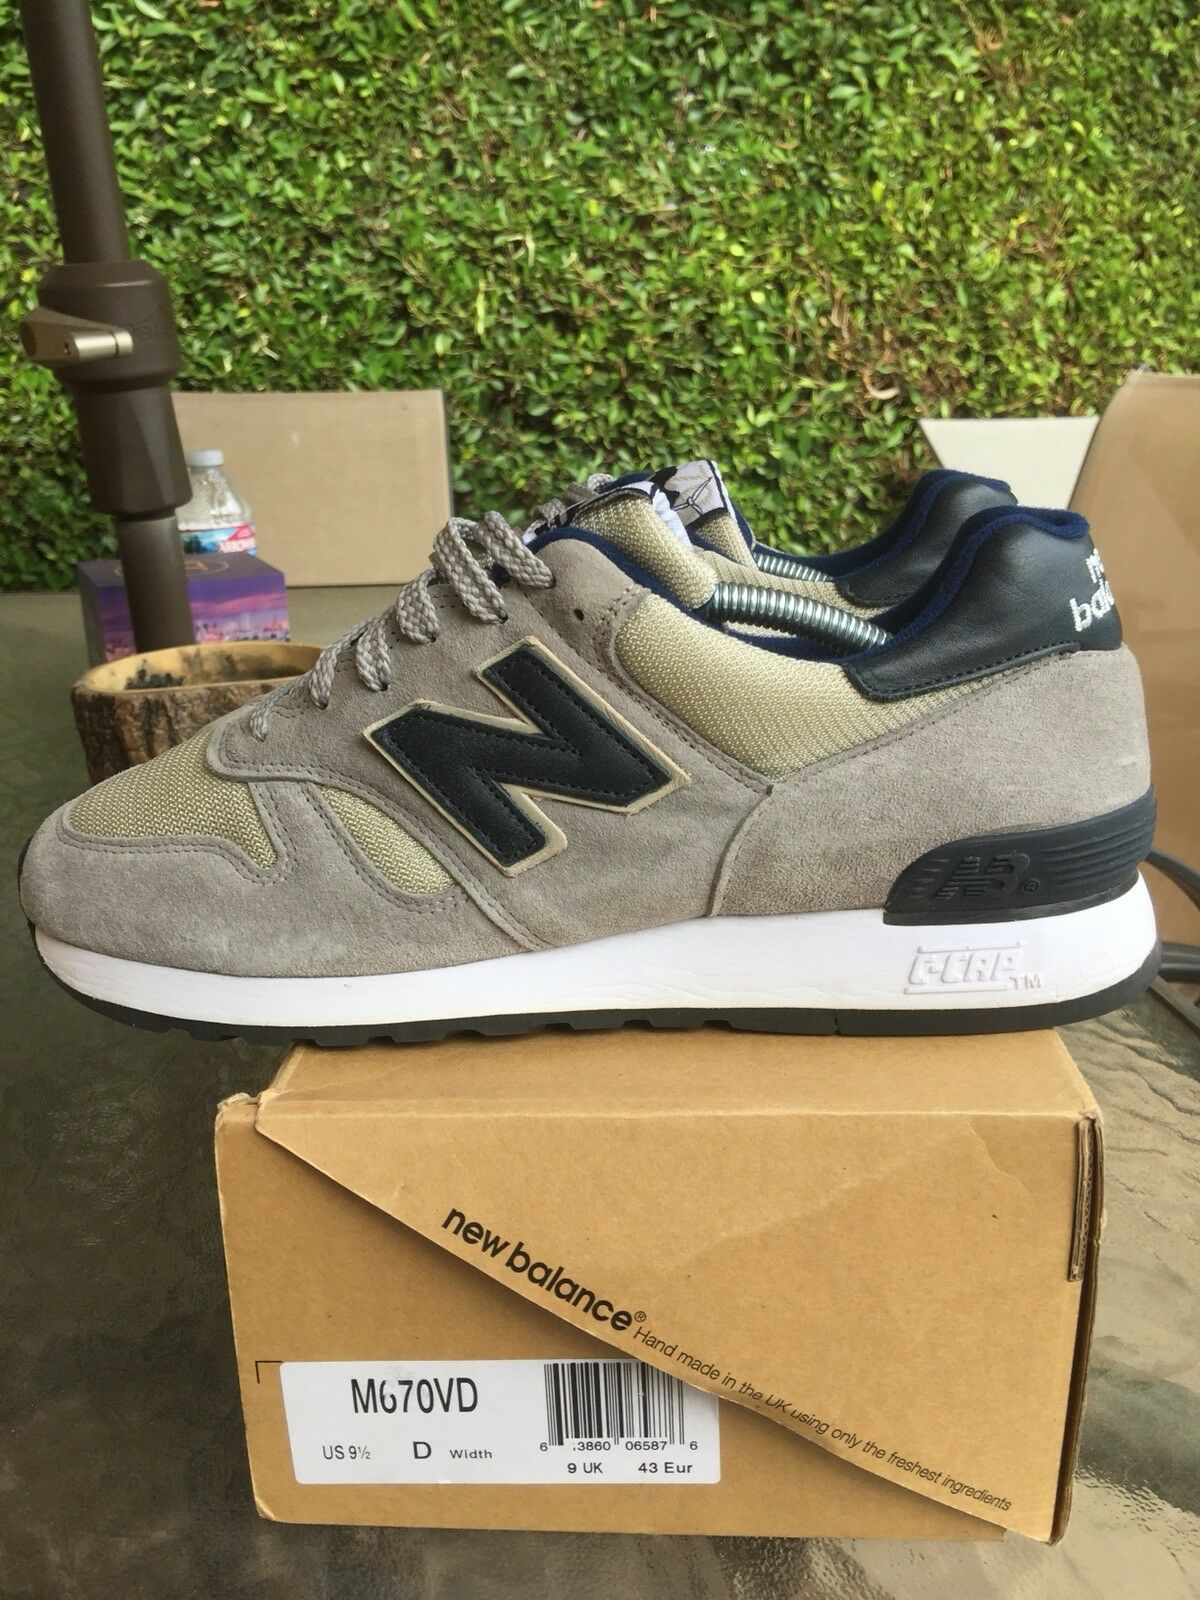 New Balance 670 VD Rare Grey Suede Made In England Sz 9.5 US